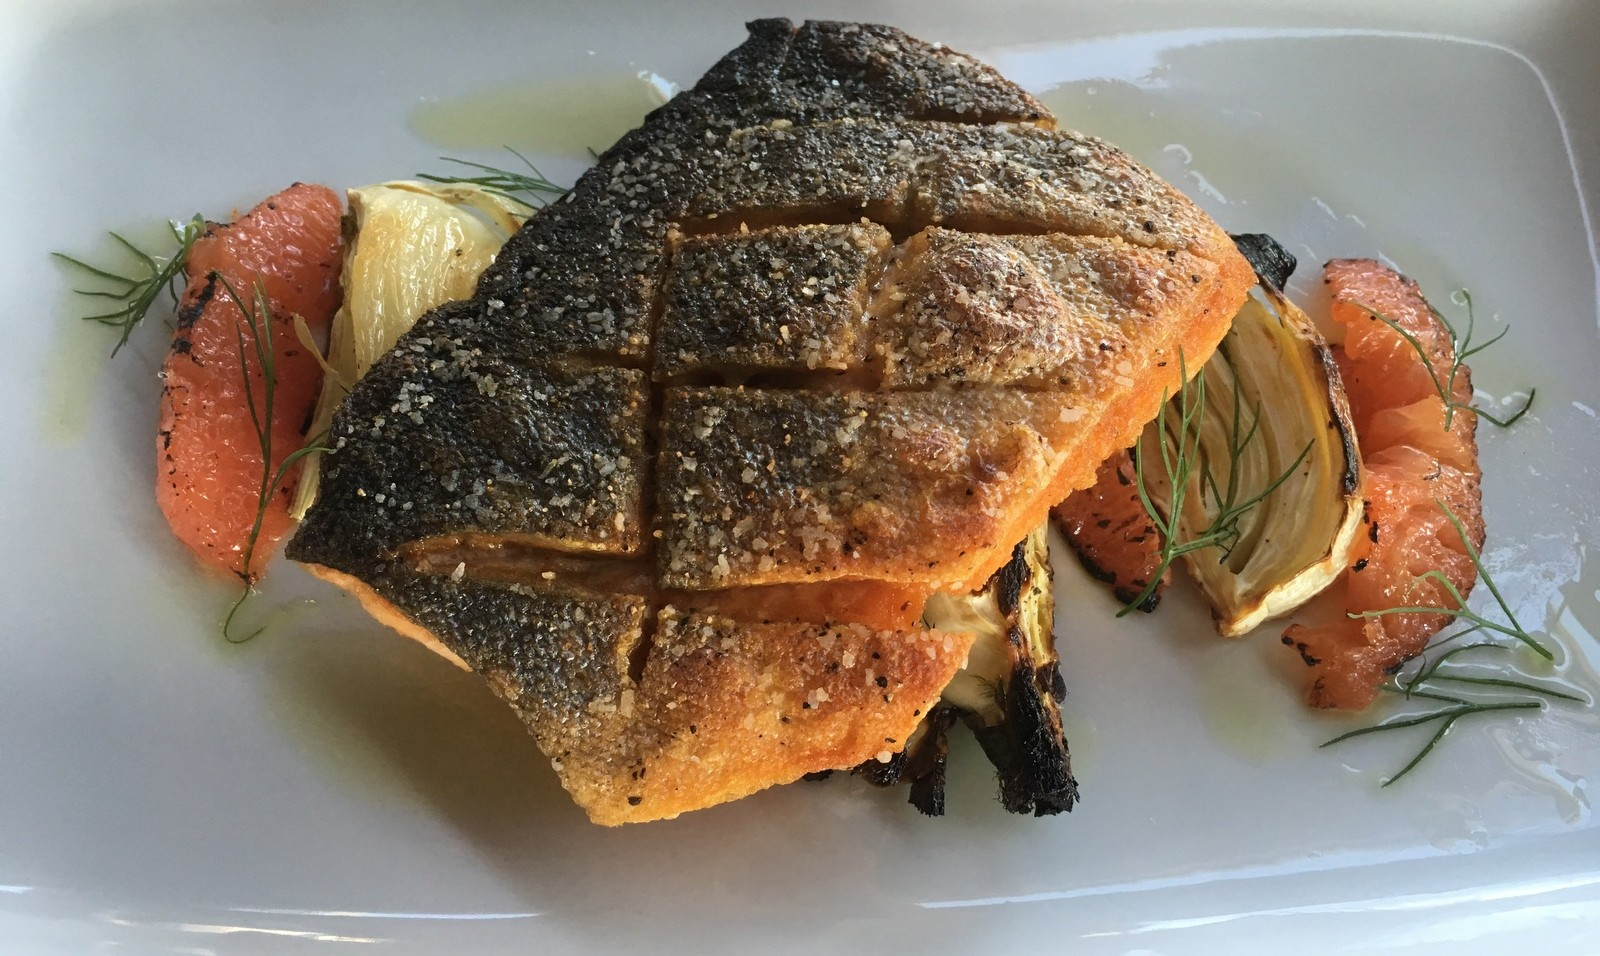 Arctic char with grilled fennel and grapefruit is on the opening menu at MidTown Kitchen. (Photo: Adrian Bylewski)